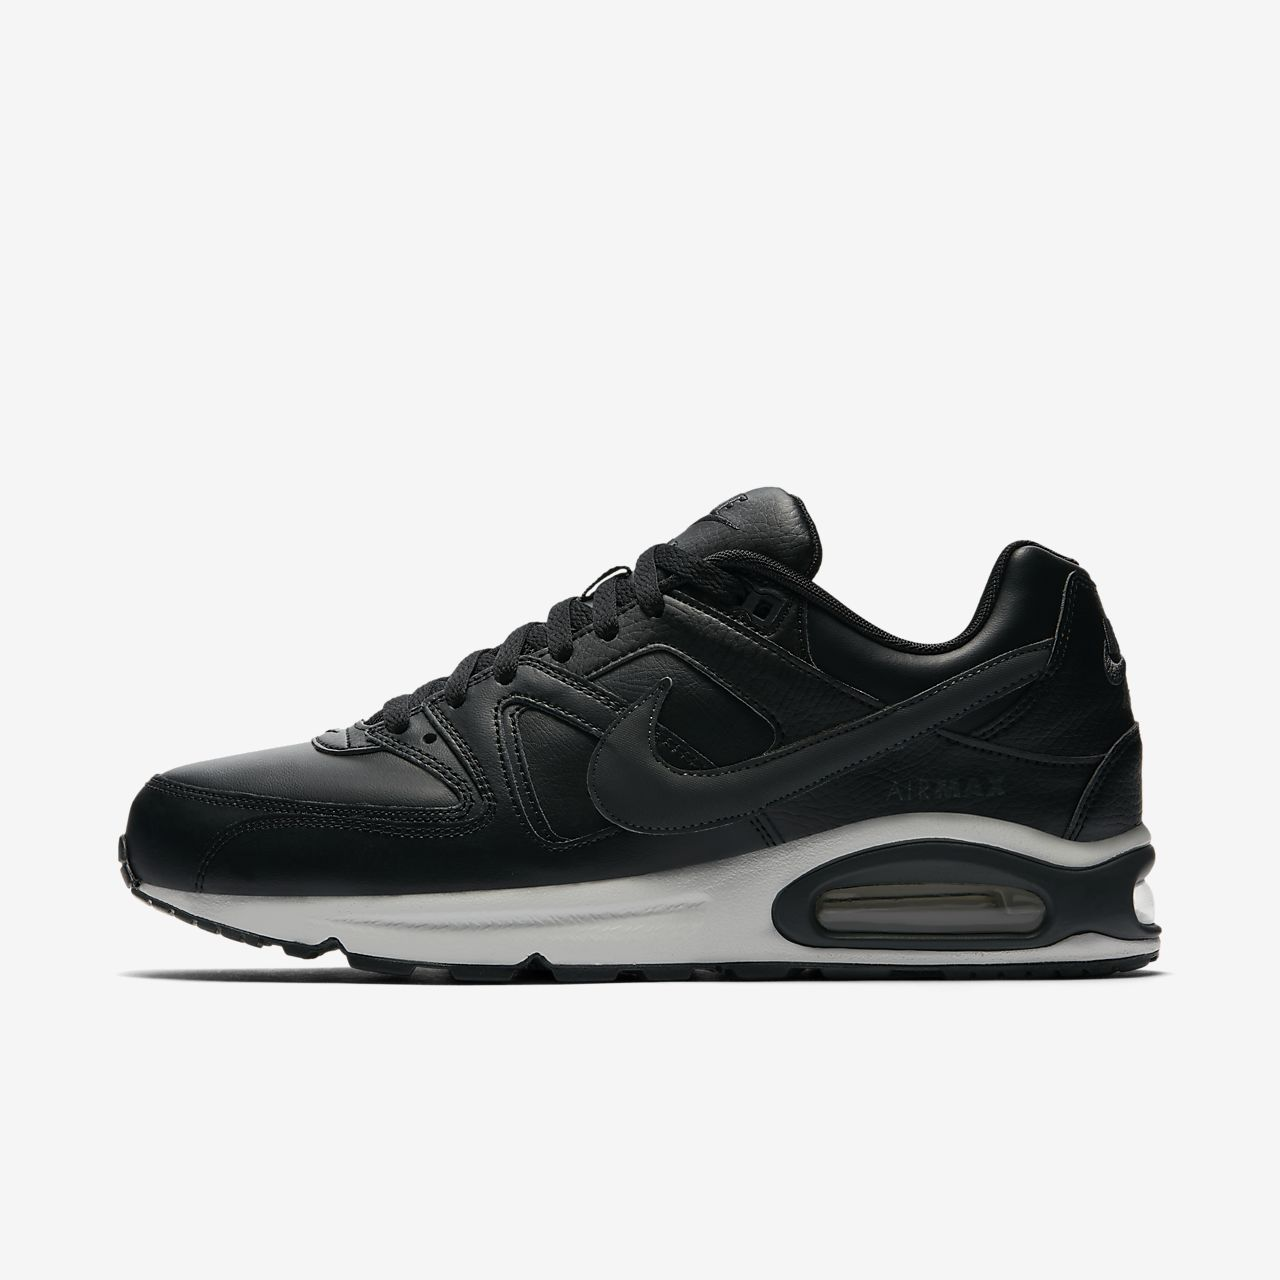 low priced a7f84 0c2a8 new arrivals nike air max command sko til mænd 06289 0f028